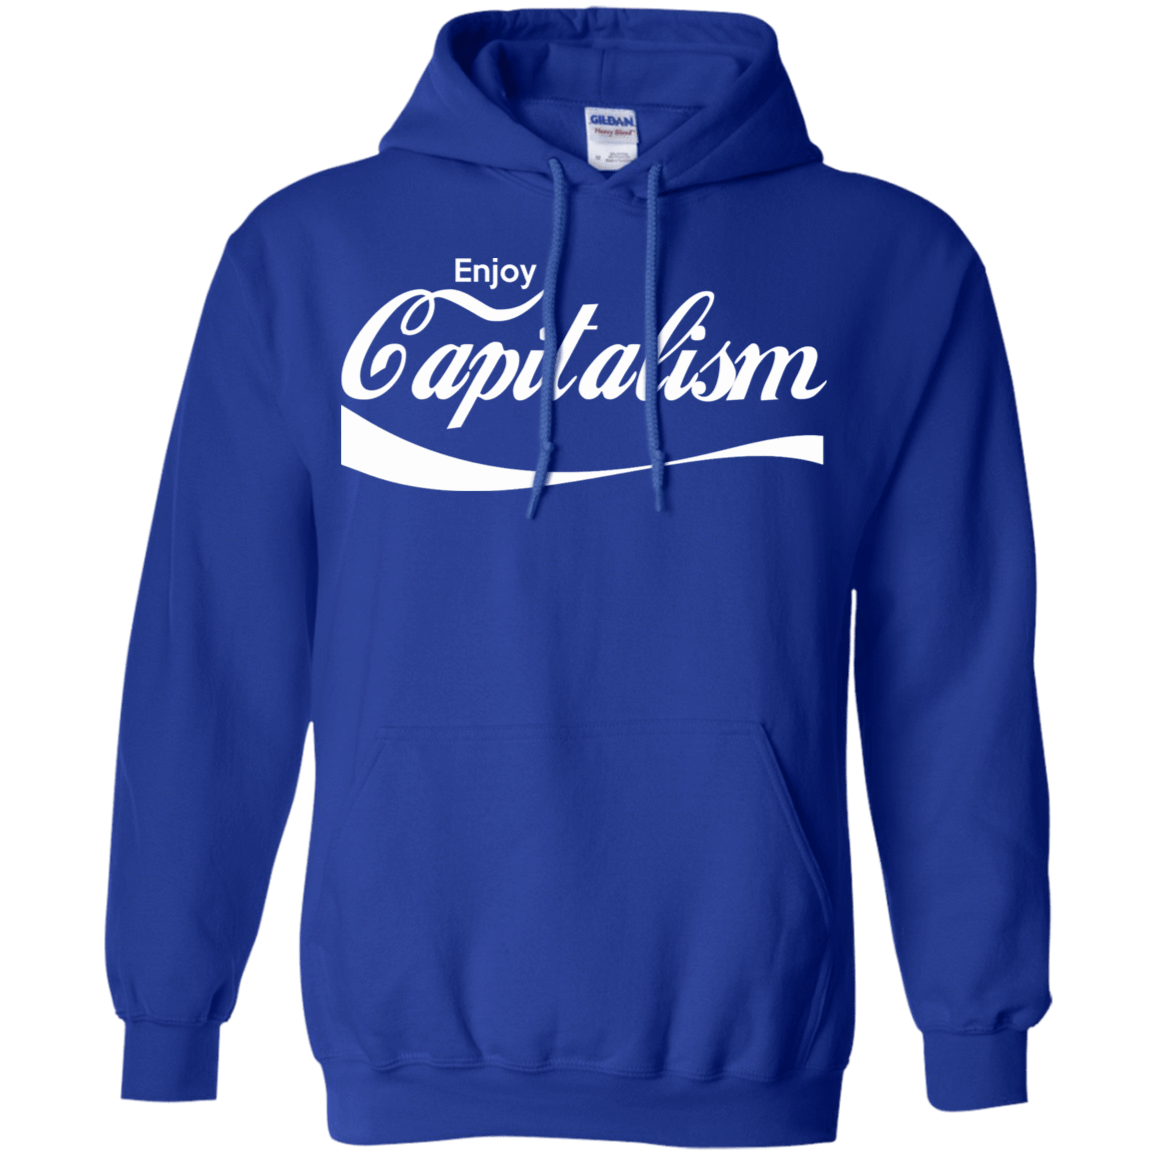 Enjoy Capitalism 541-4765-74209512-23175 - Tee Ript